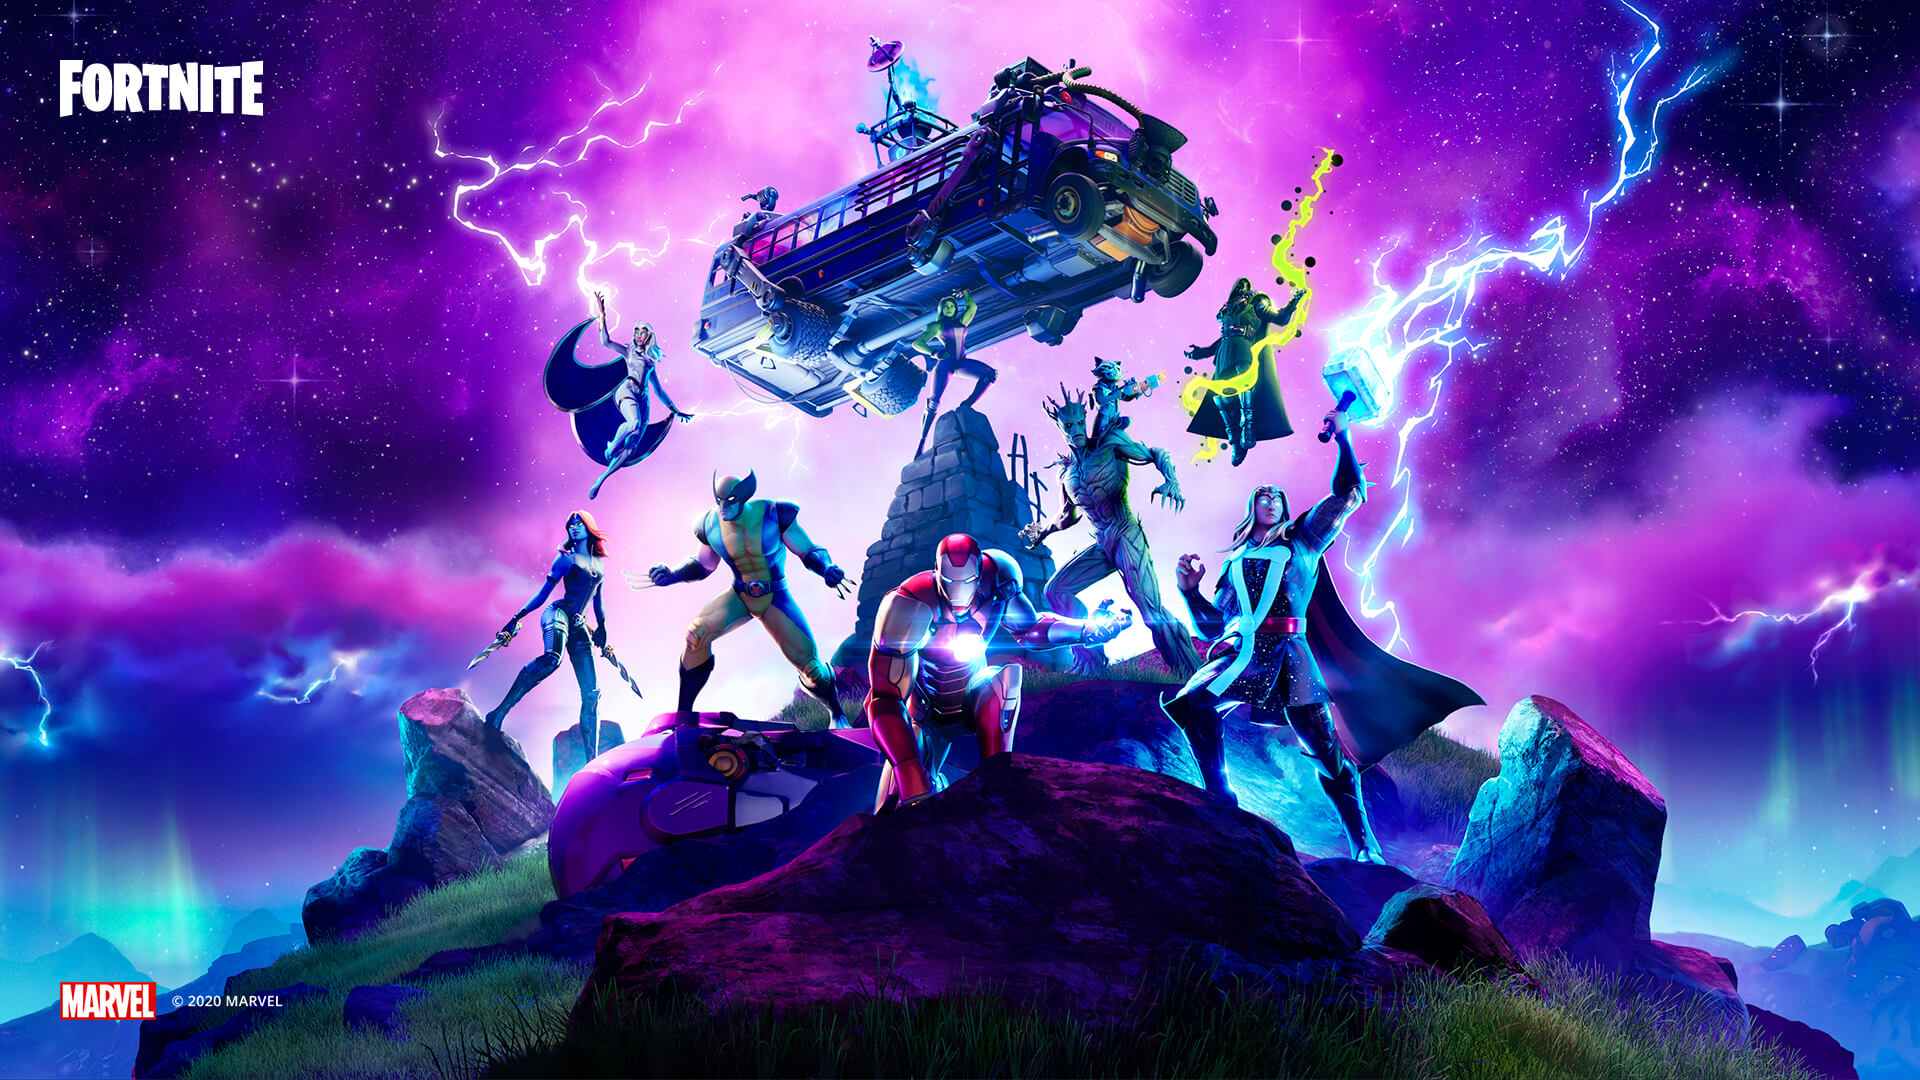 Fortnite Free To Play Cross Platform Game Fortnite